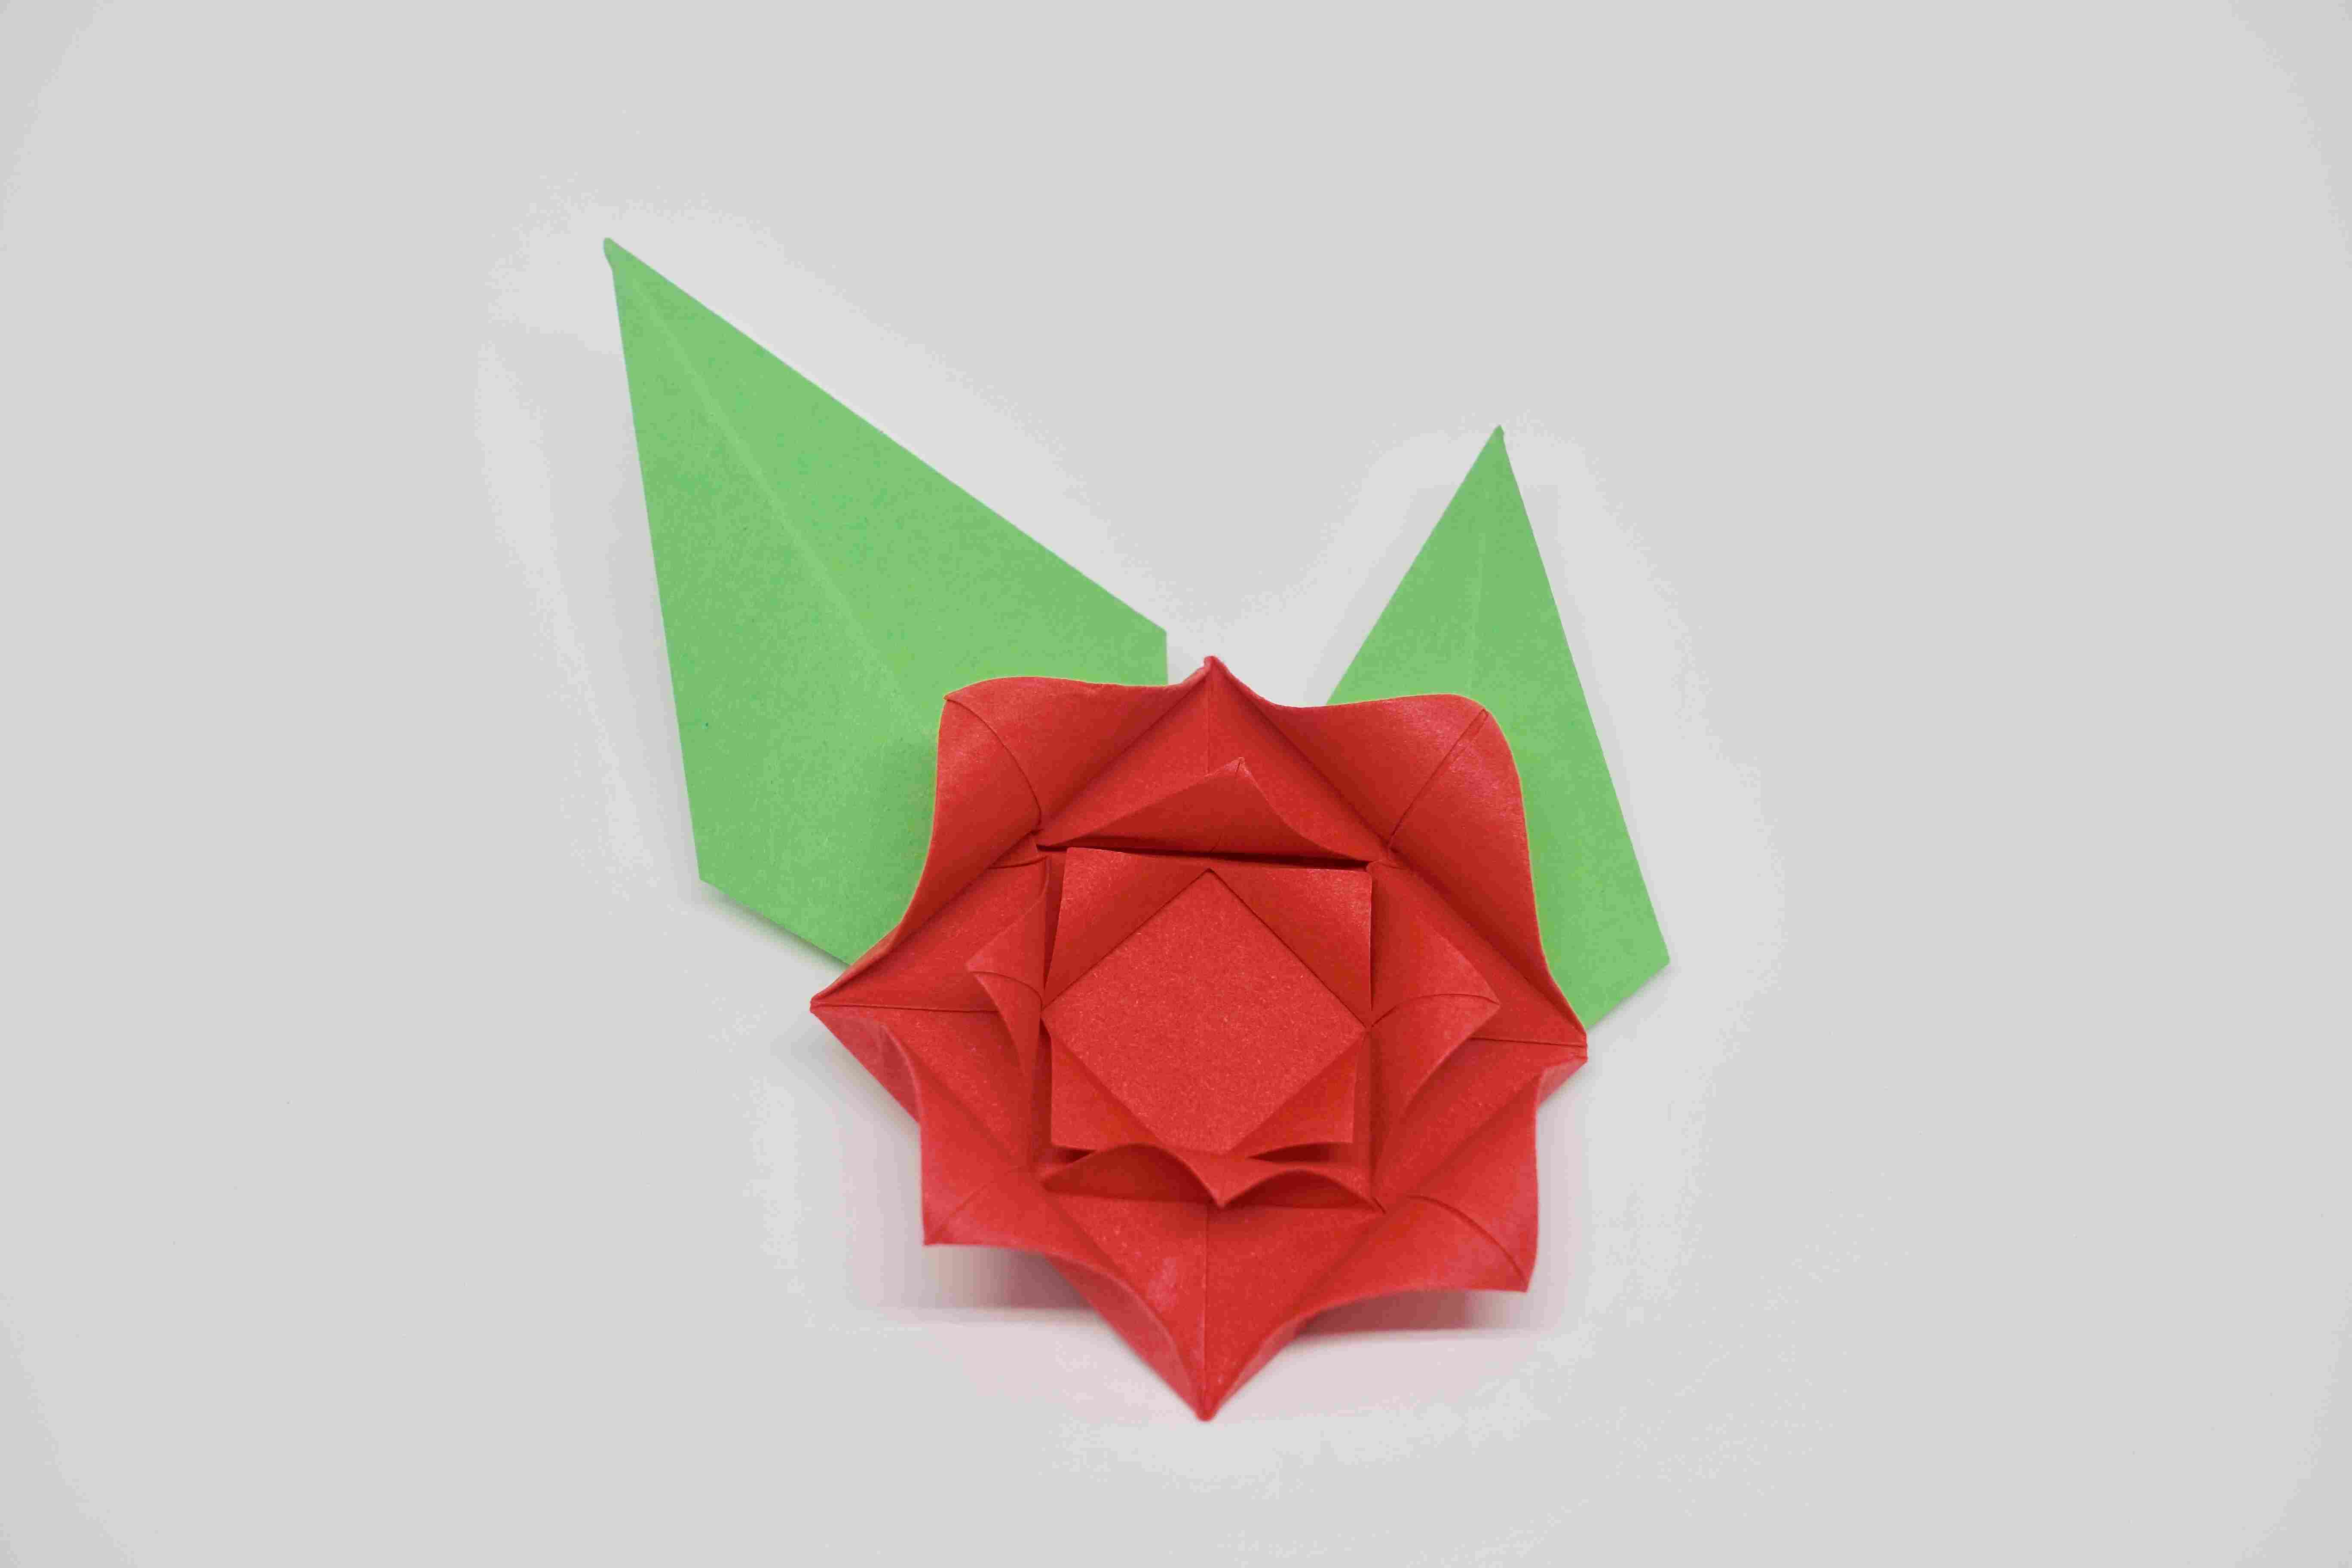 origami flower instruction diagram 2006 cobalt headlight wiring make an easy rose complete your